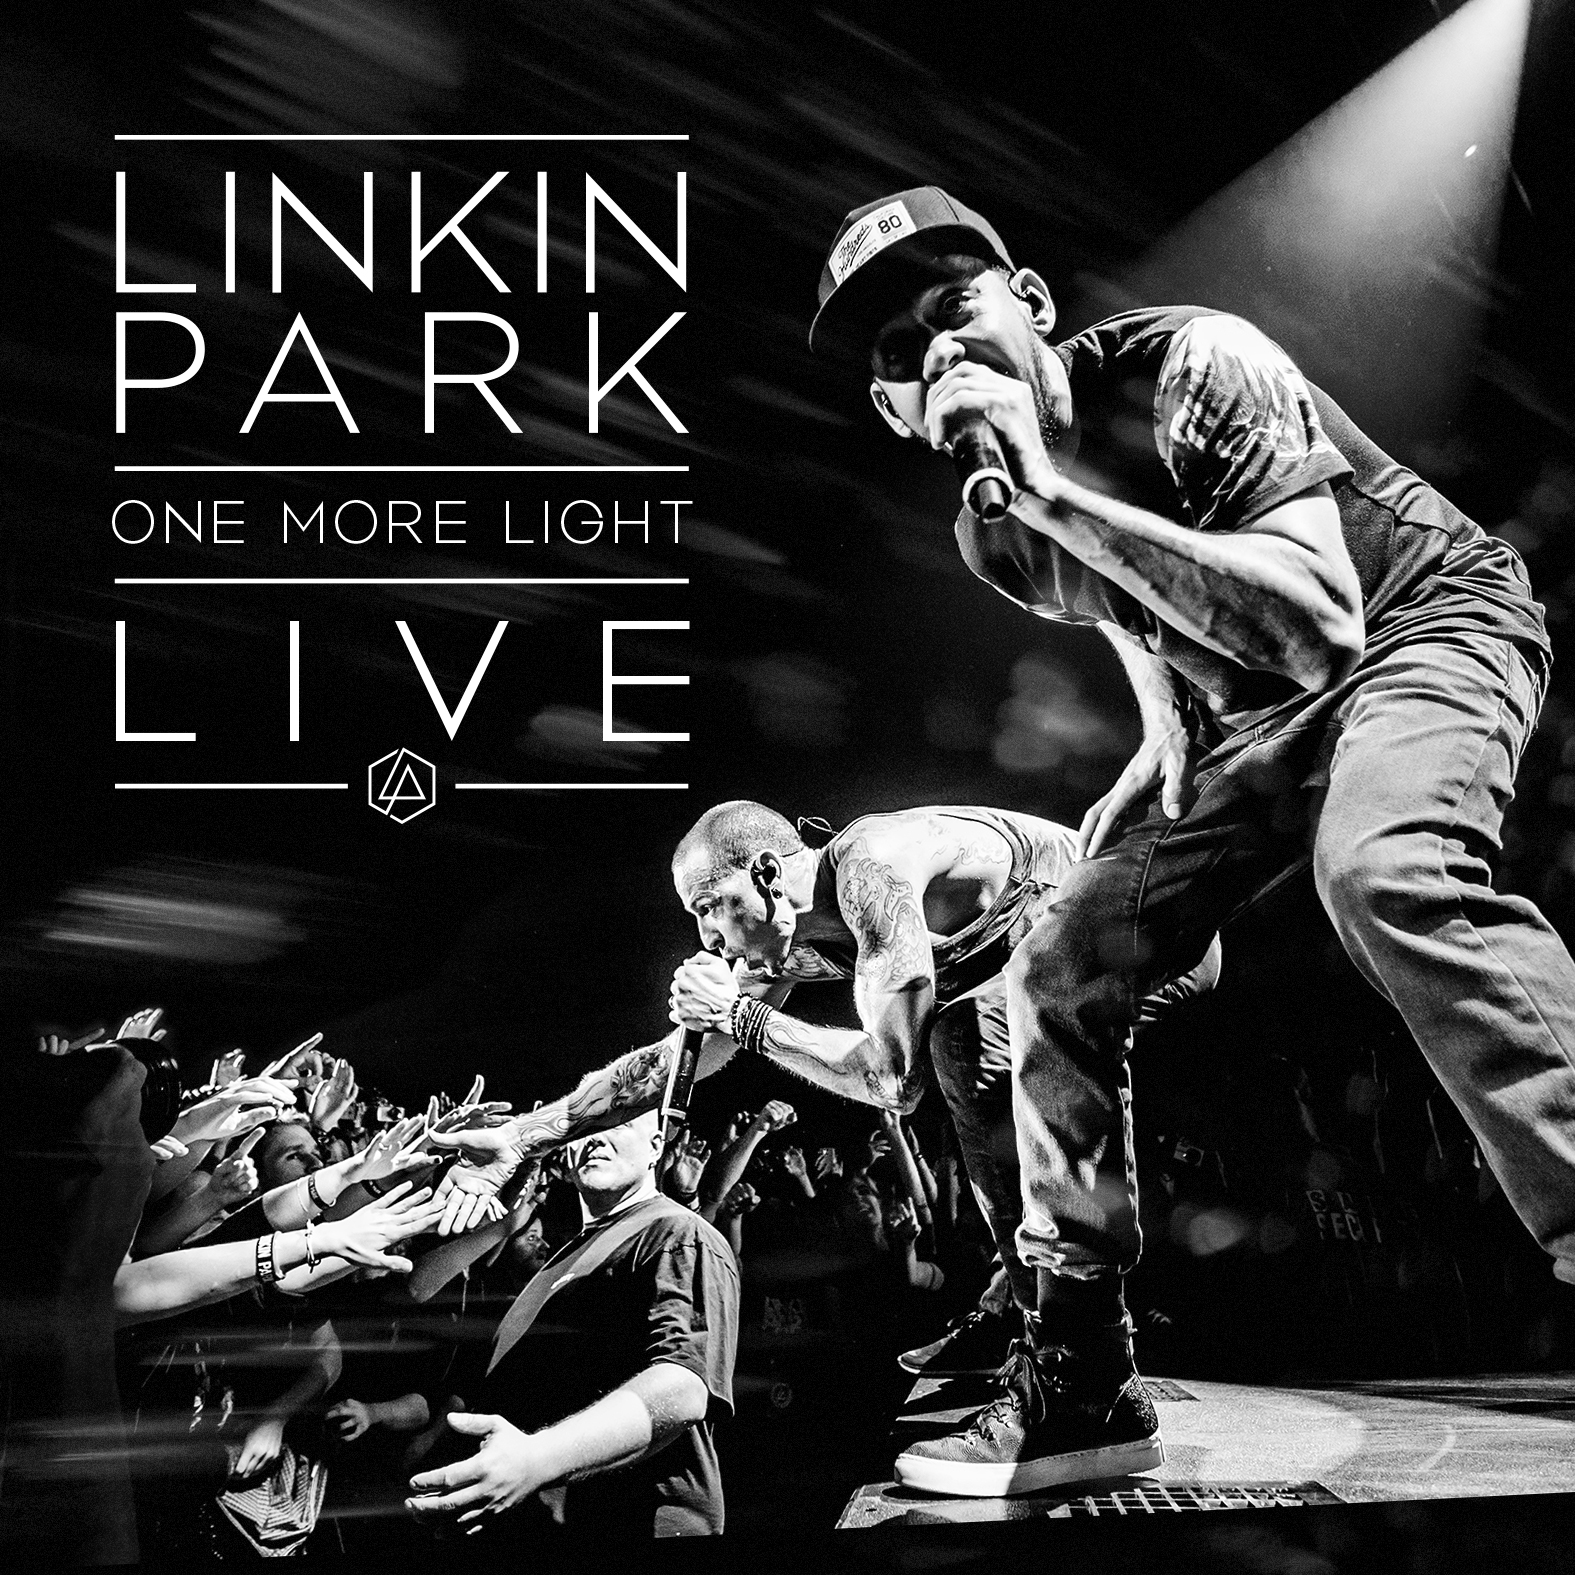 LINKIN PARK - One More Light Live - Linkin Park 2017-12-15 05:09